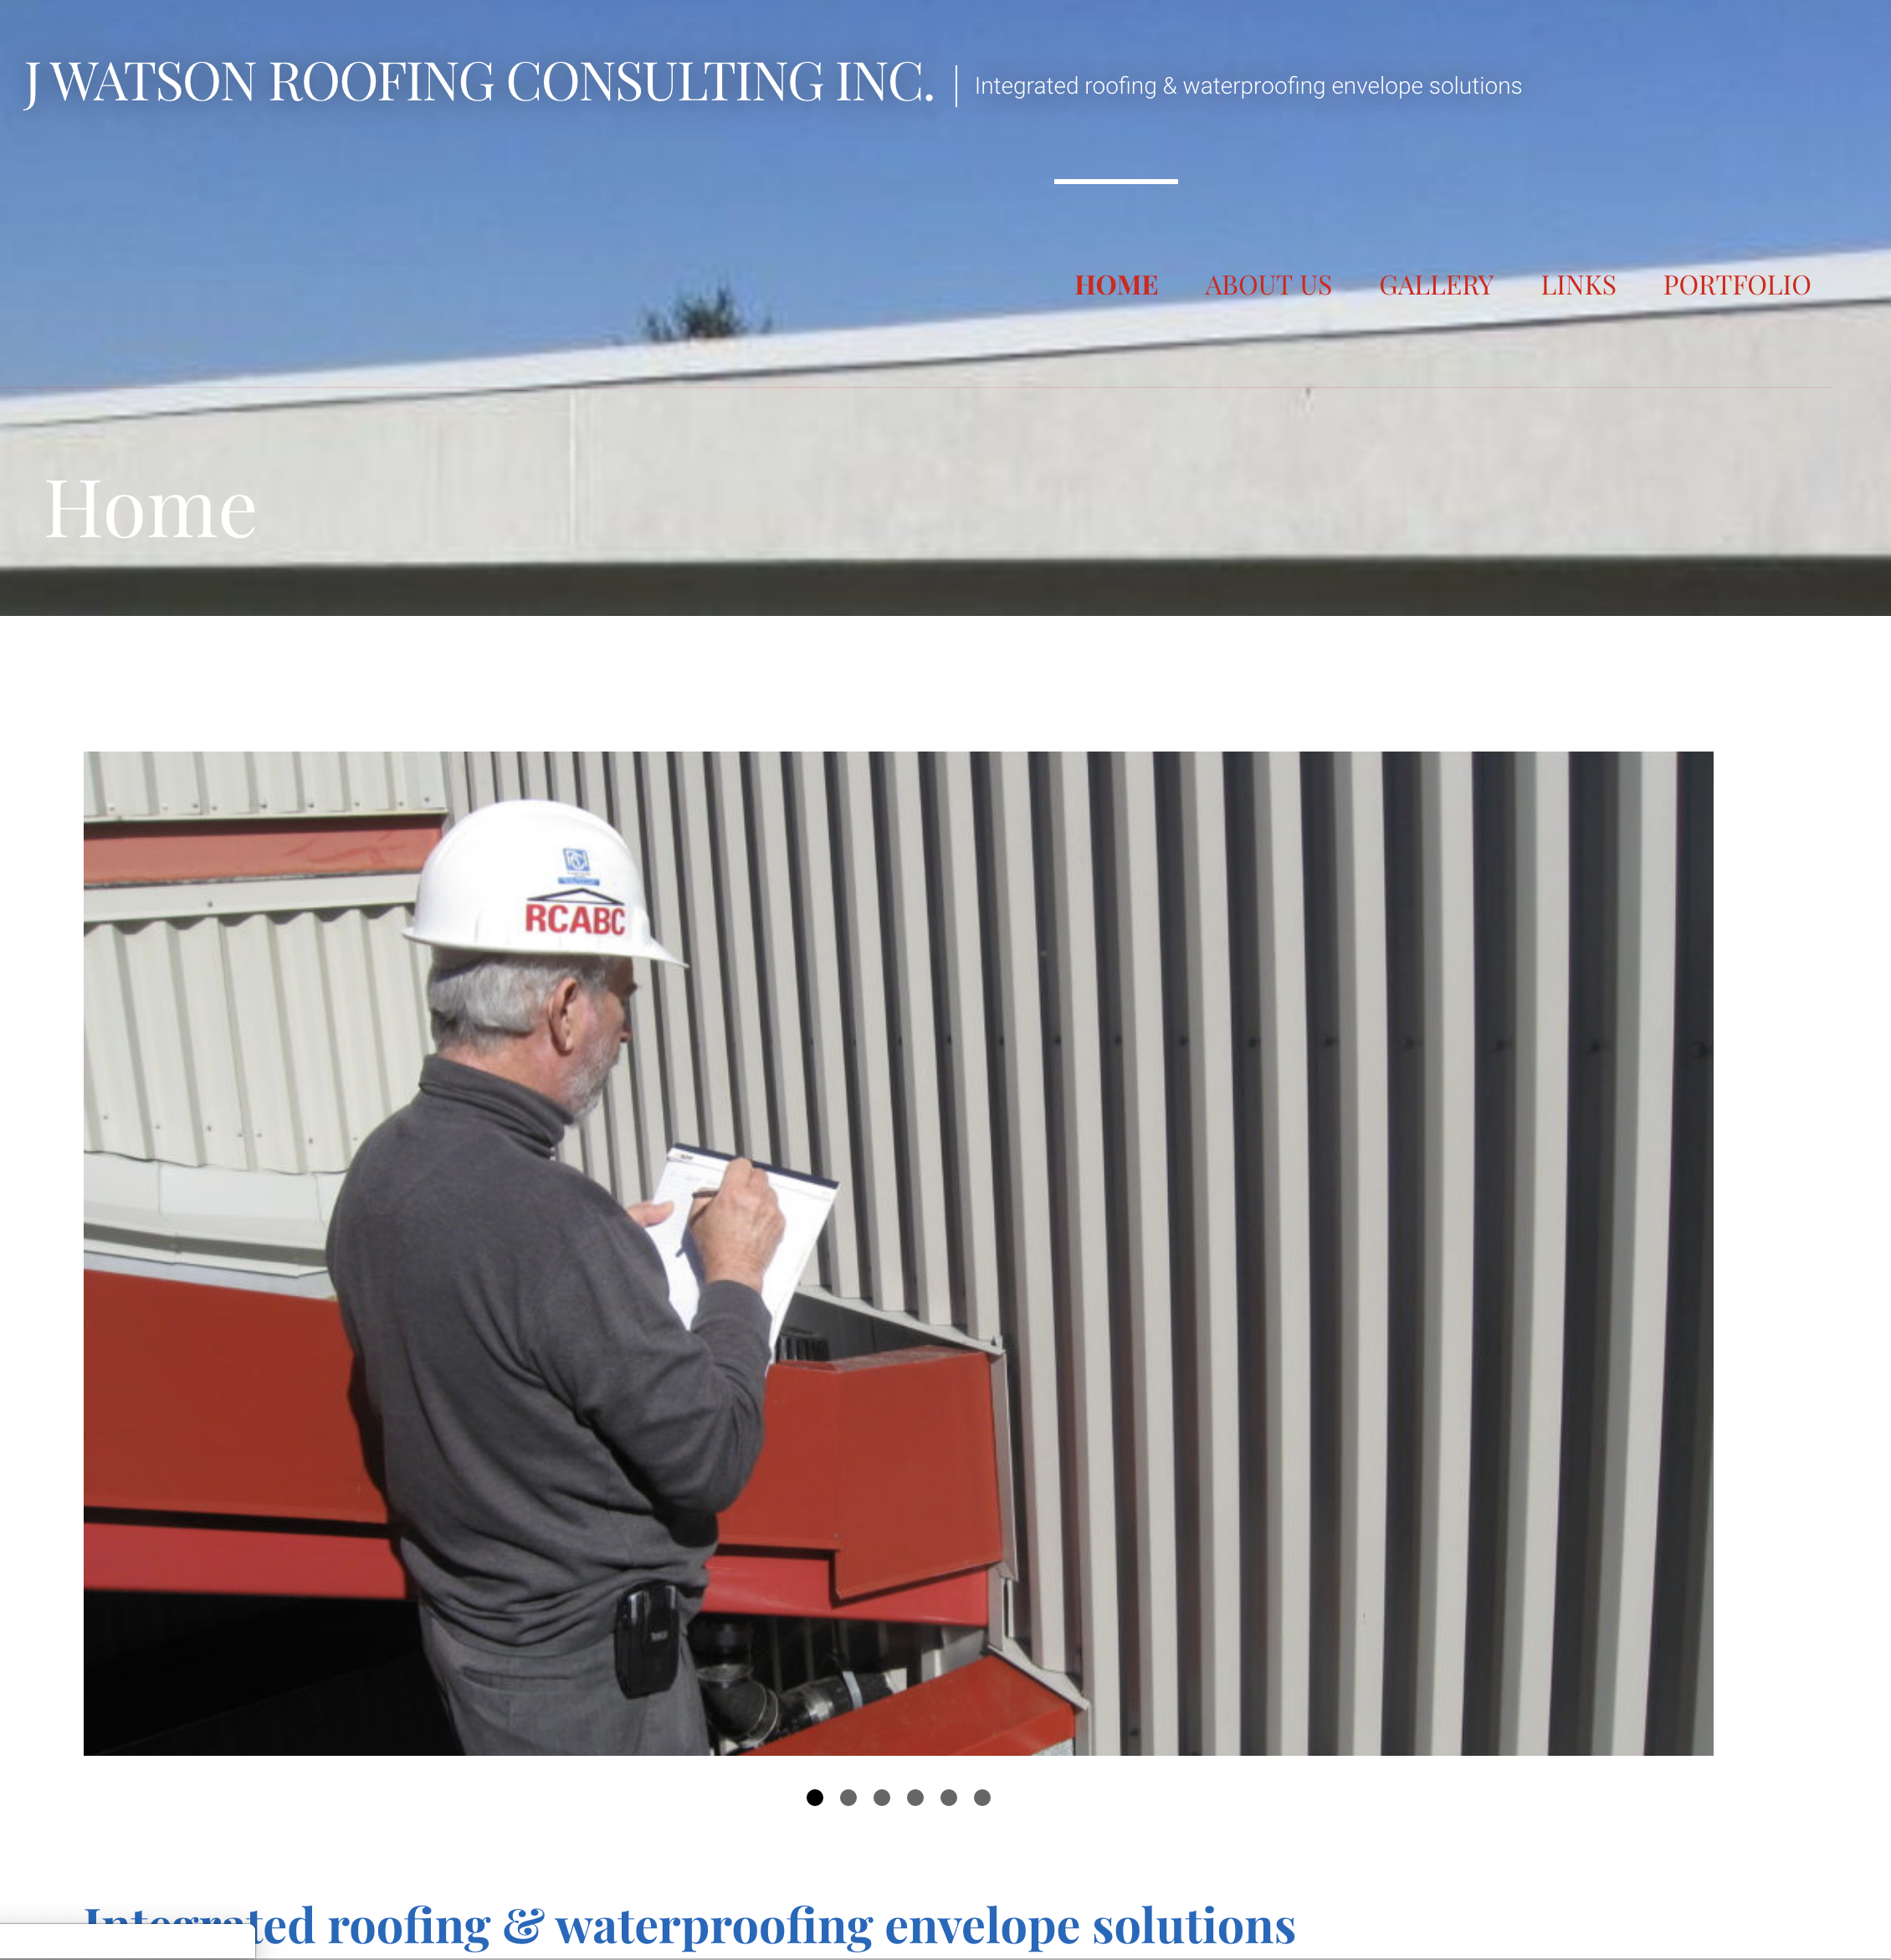 J WATSON ROOFING CONSULTING